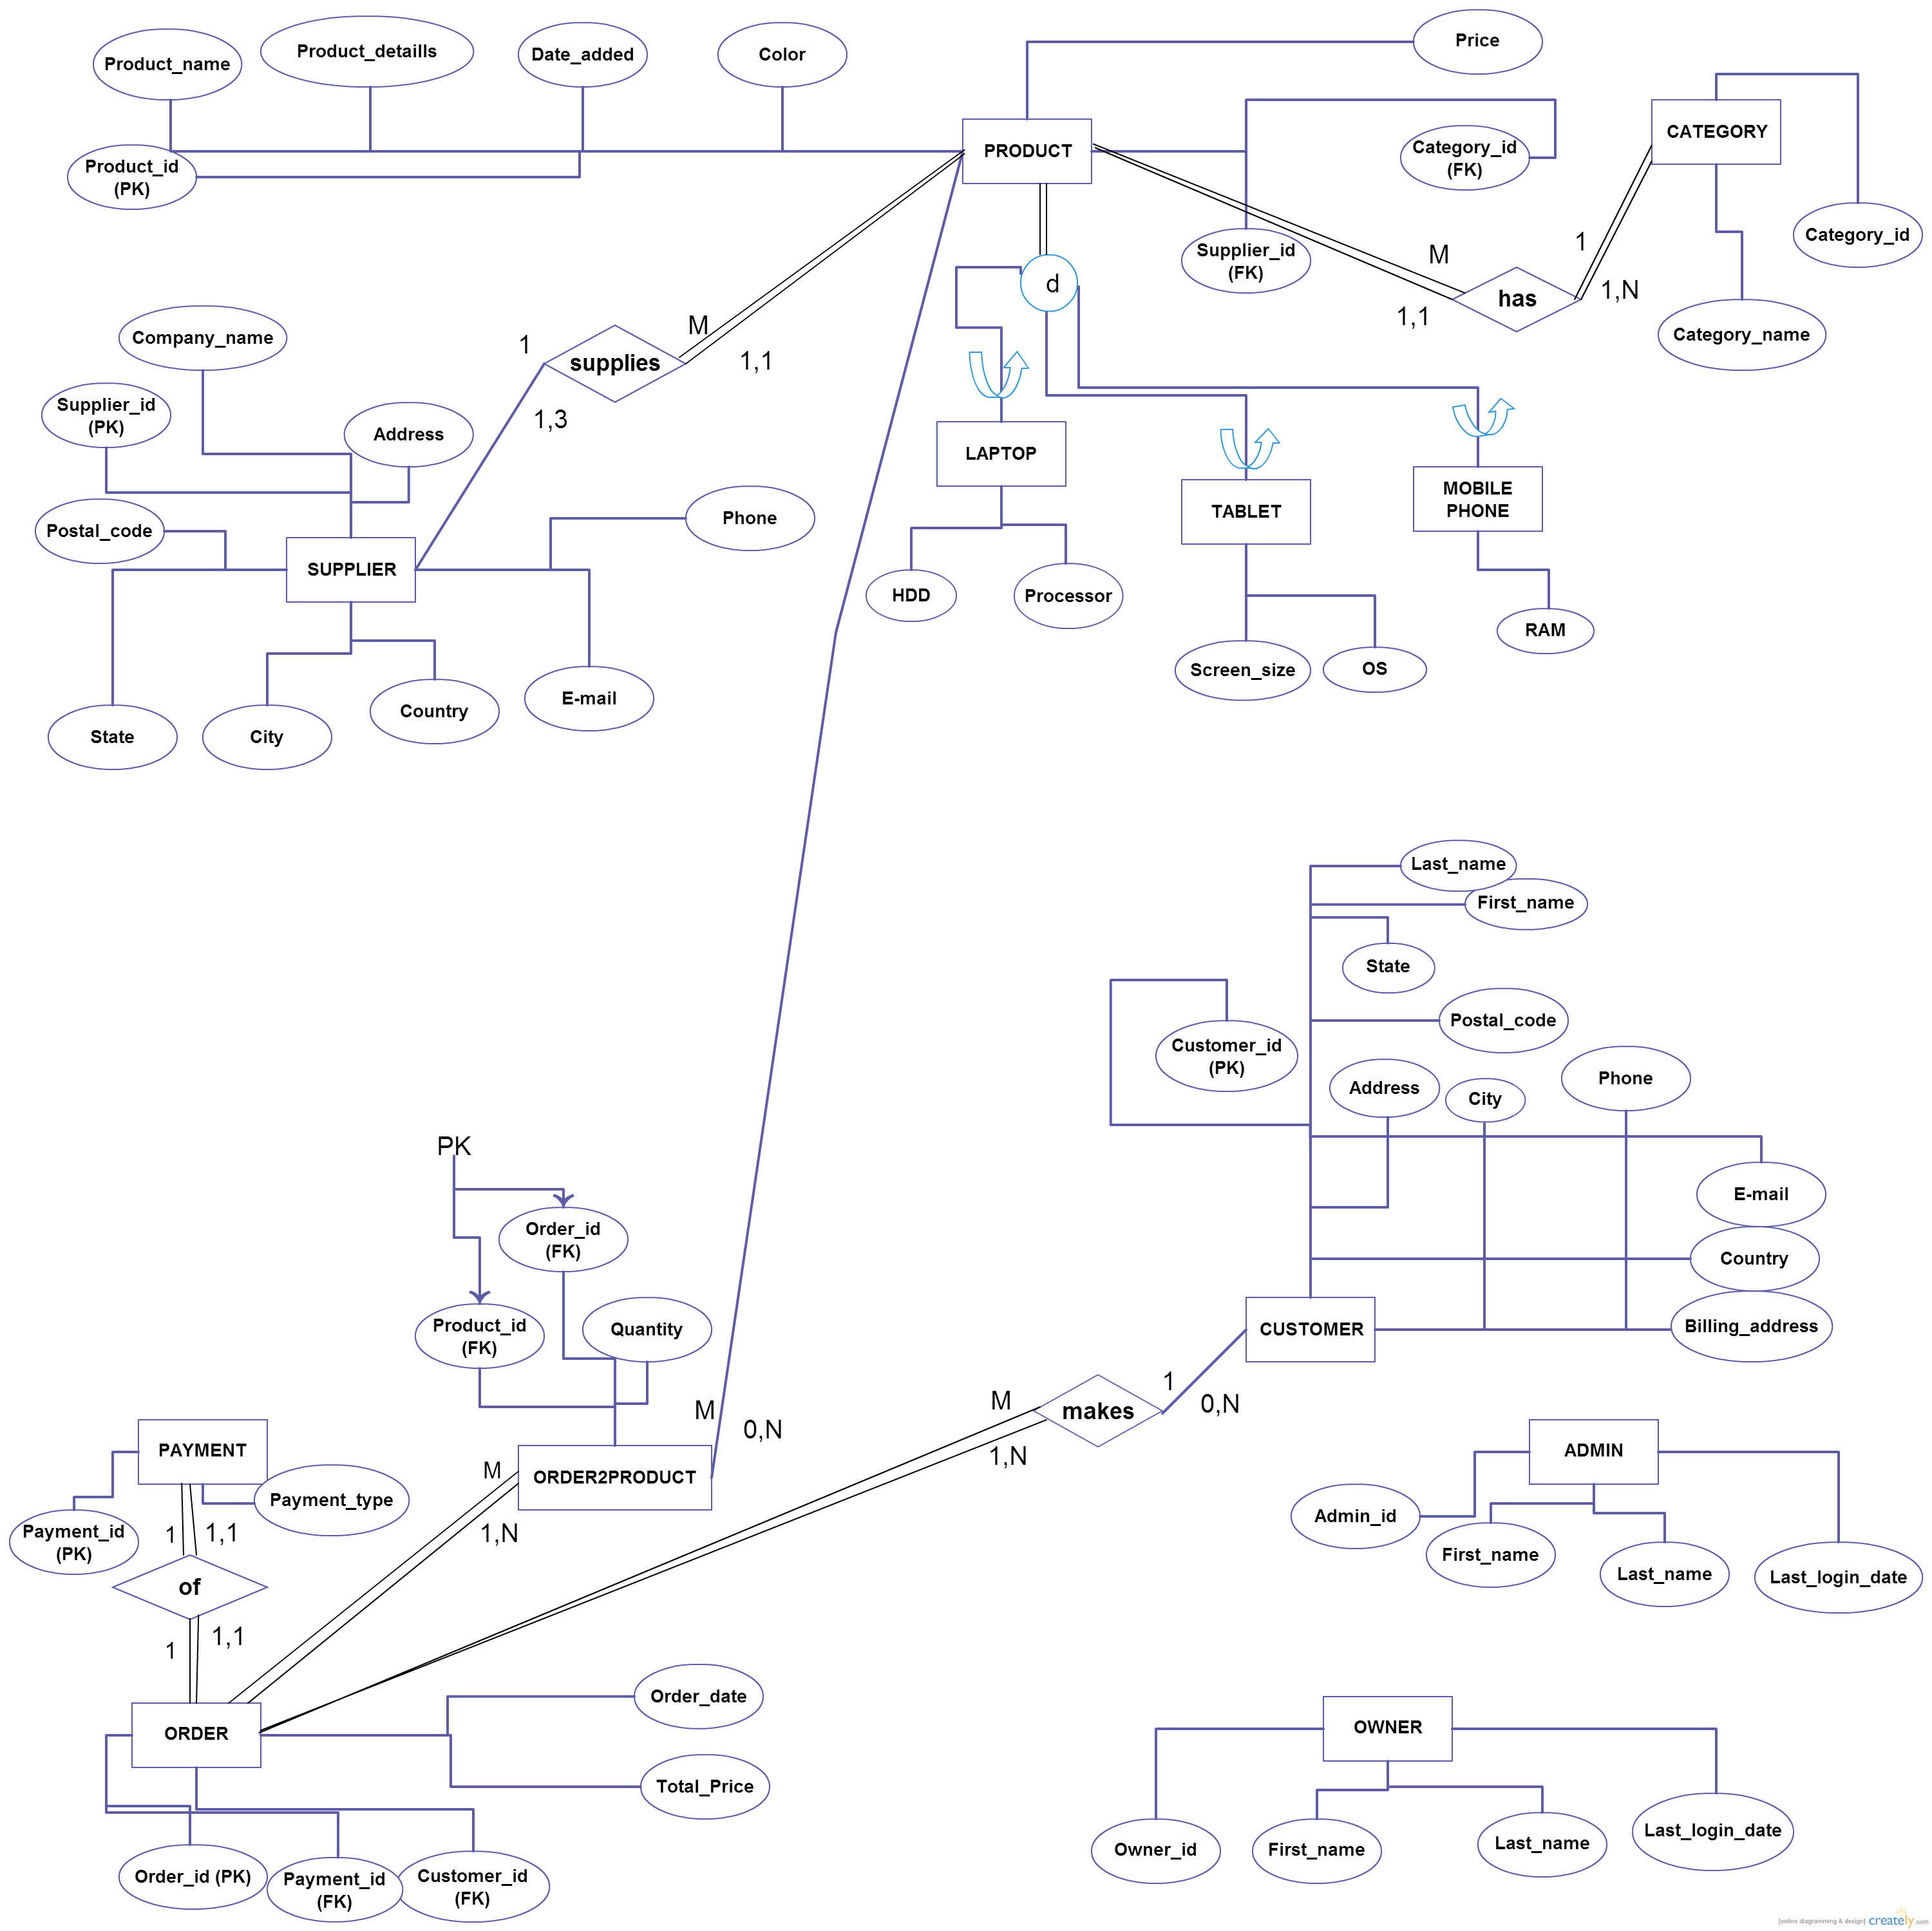 Does This E-R/eer Diagram Contain Correct Relationships And inside Er Model Cardinality